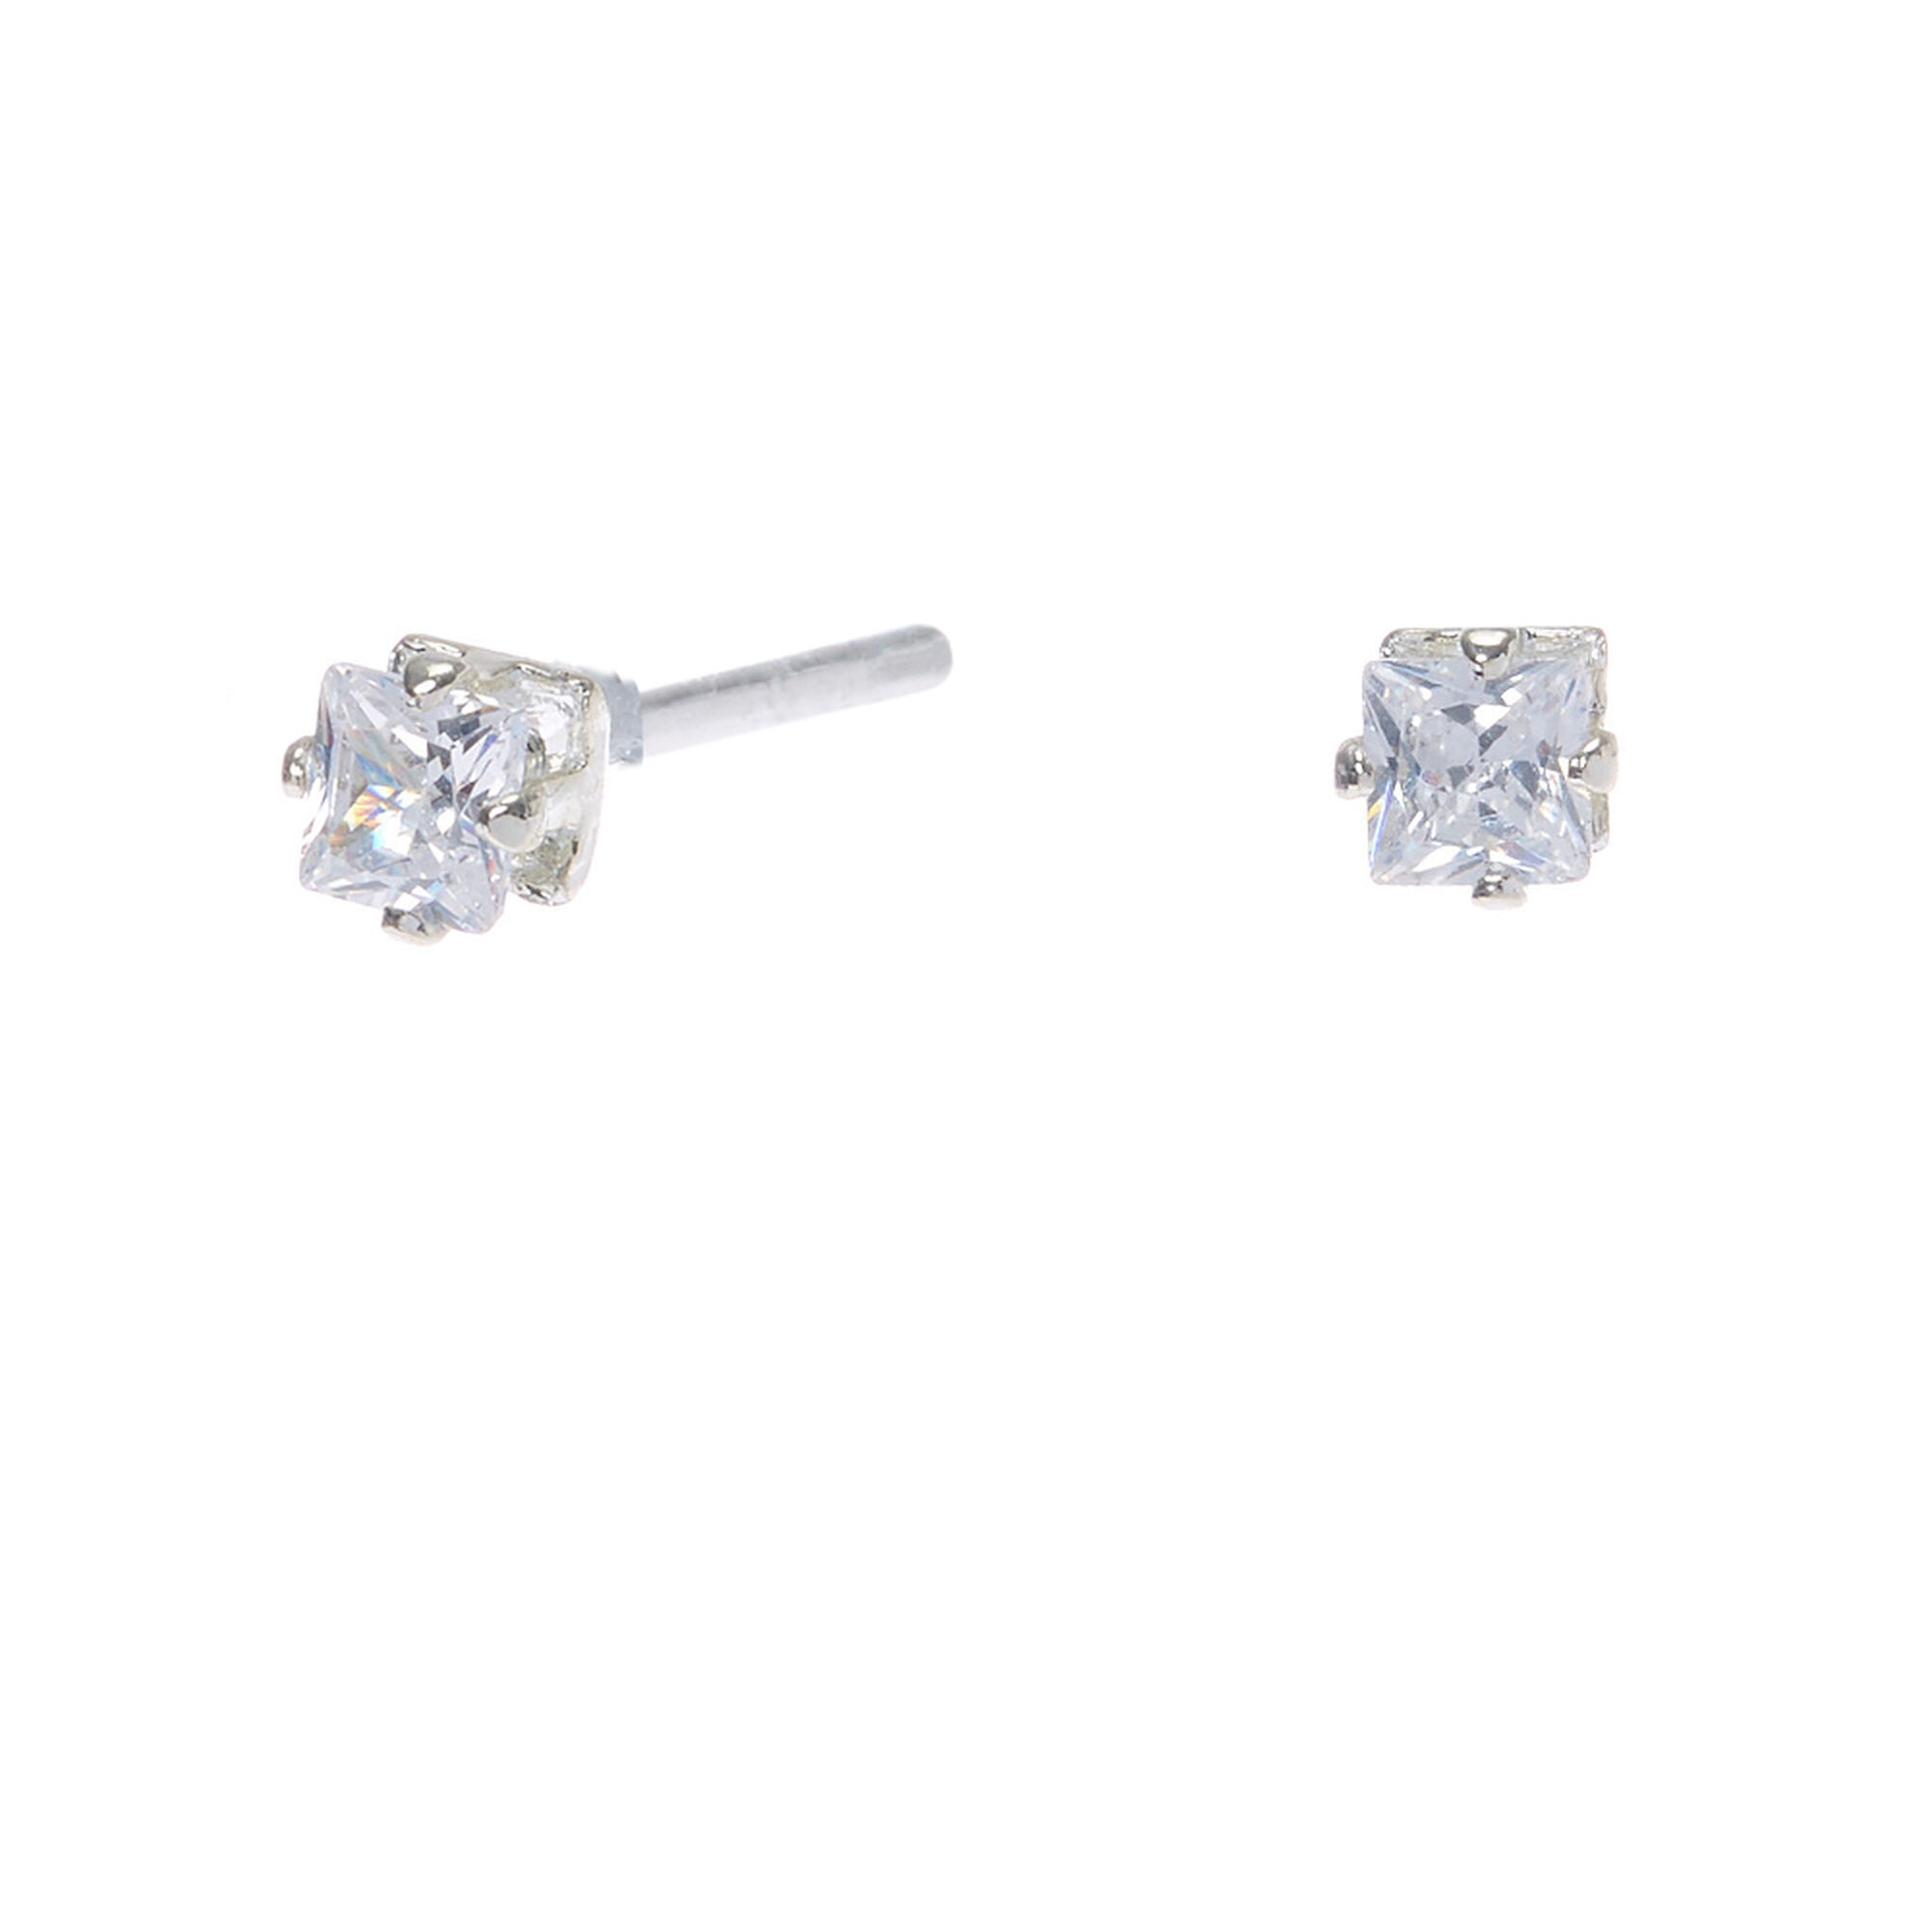 Silver Cubic Zirconia Square Stud Earrings - 3MM